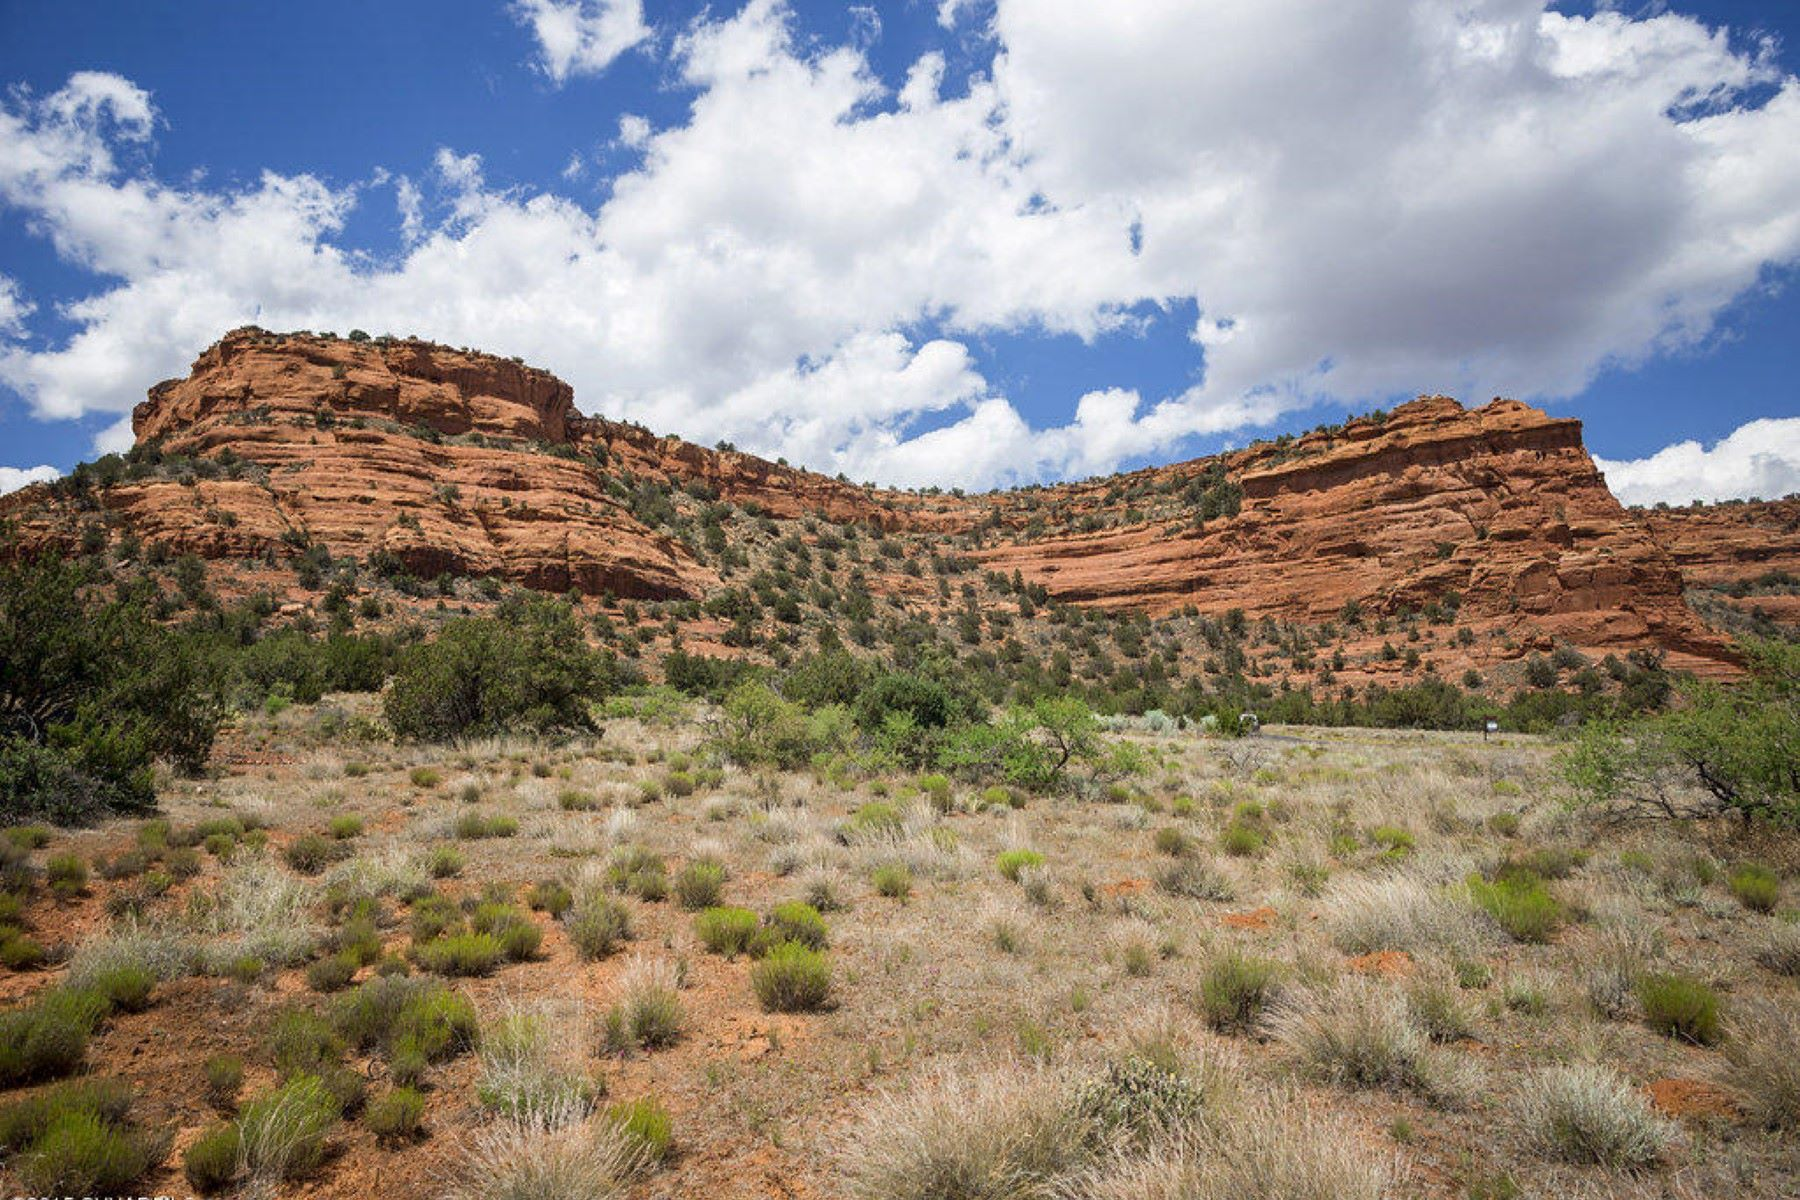 Land for Sale at Gently sloped lot with spectacular and domineering red rock views 31 Callisto, Sedona, Arizona, 86336 United States